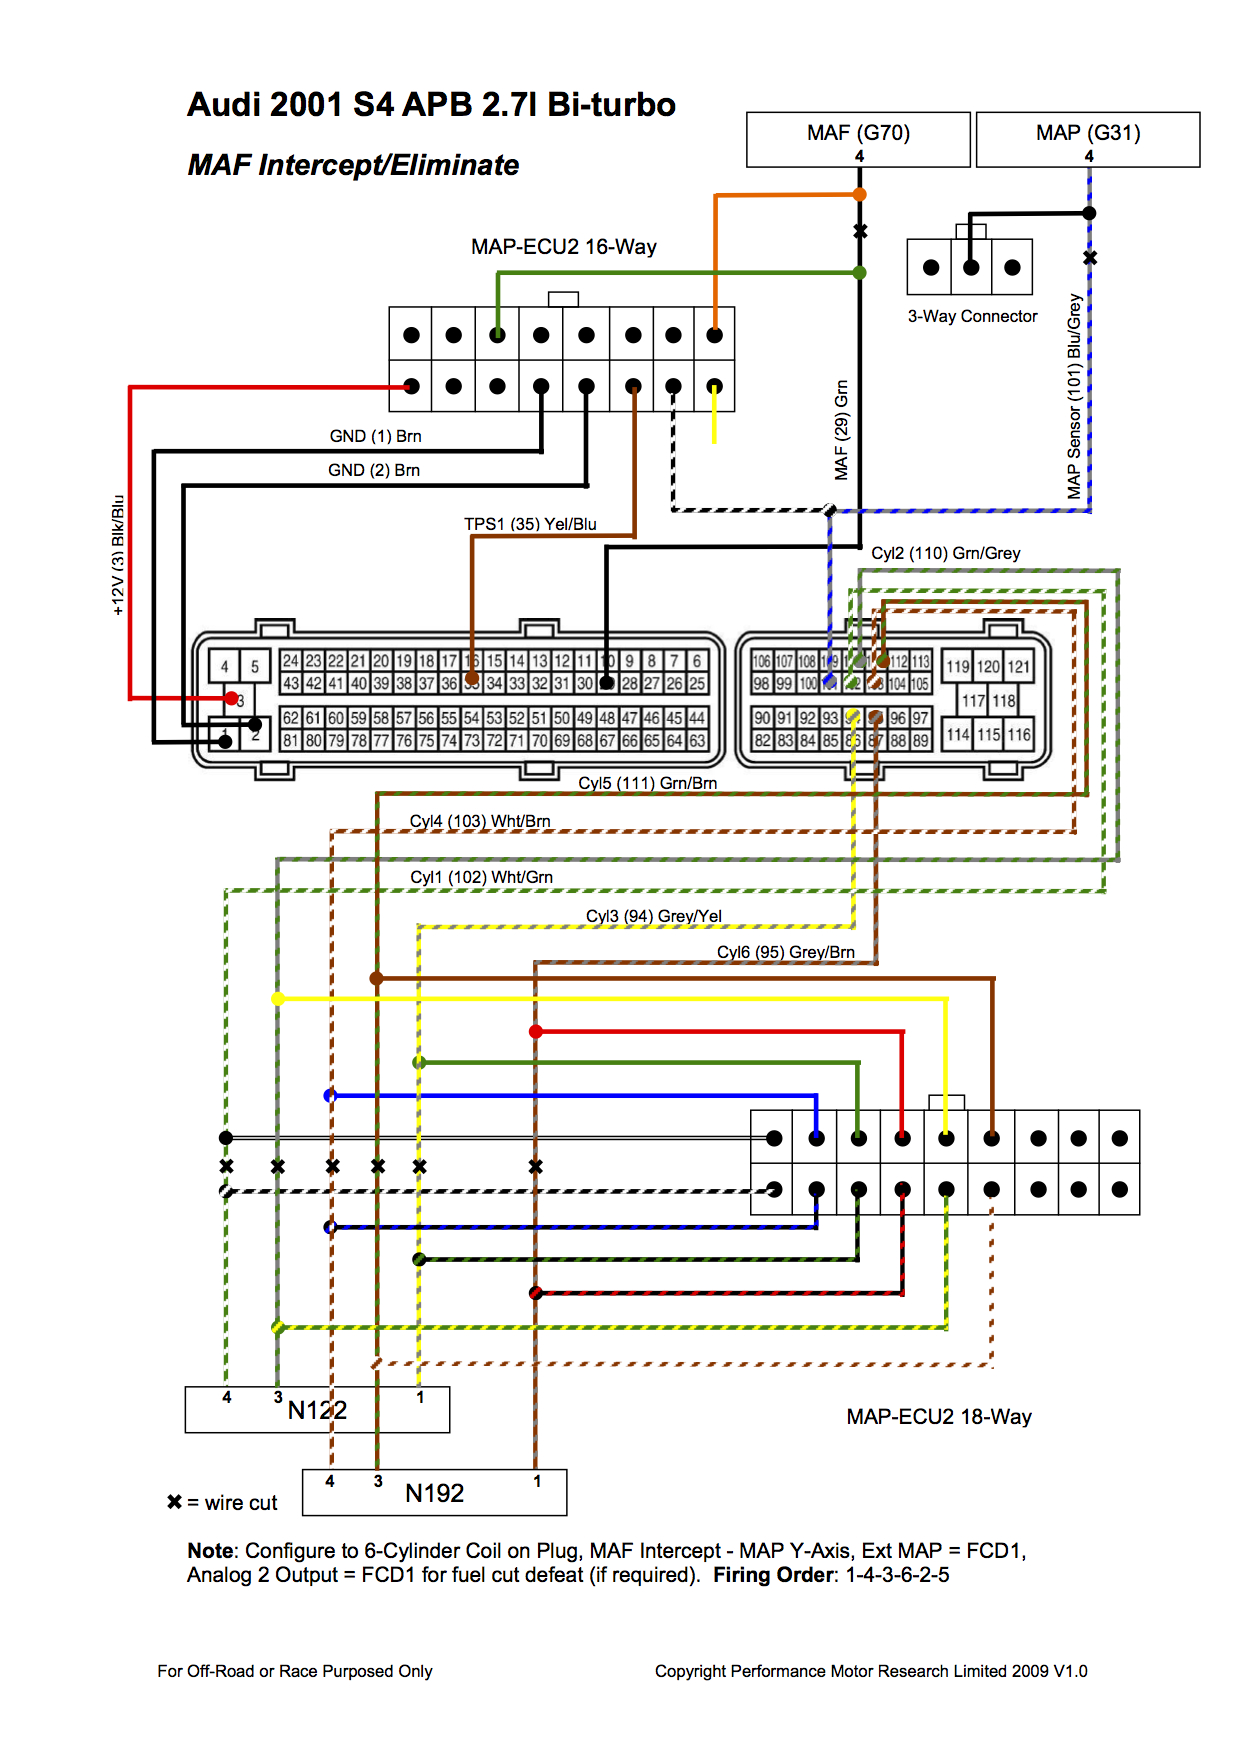 Audi S4 20011 mapecu wiring diagrams audi, bmw, ford, honda, lexus, nissan, toyota 1996 toyota tacoma wiring diagram at virtualis.co